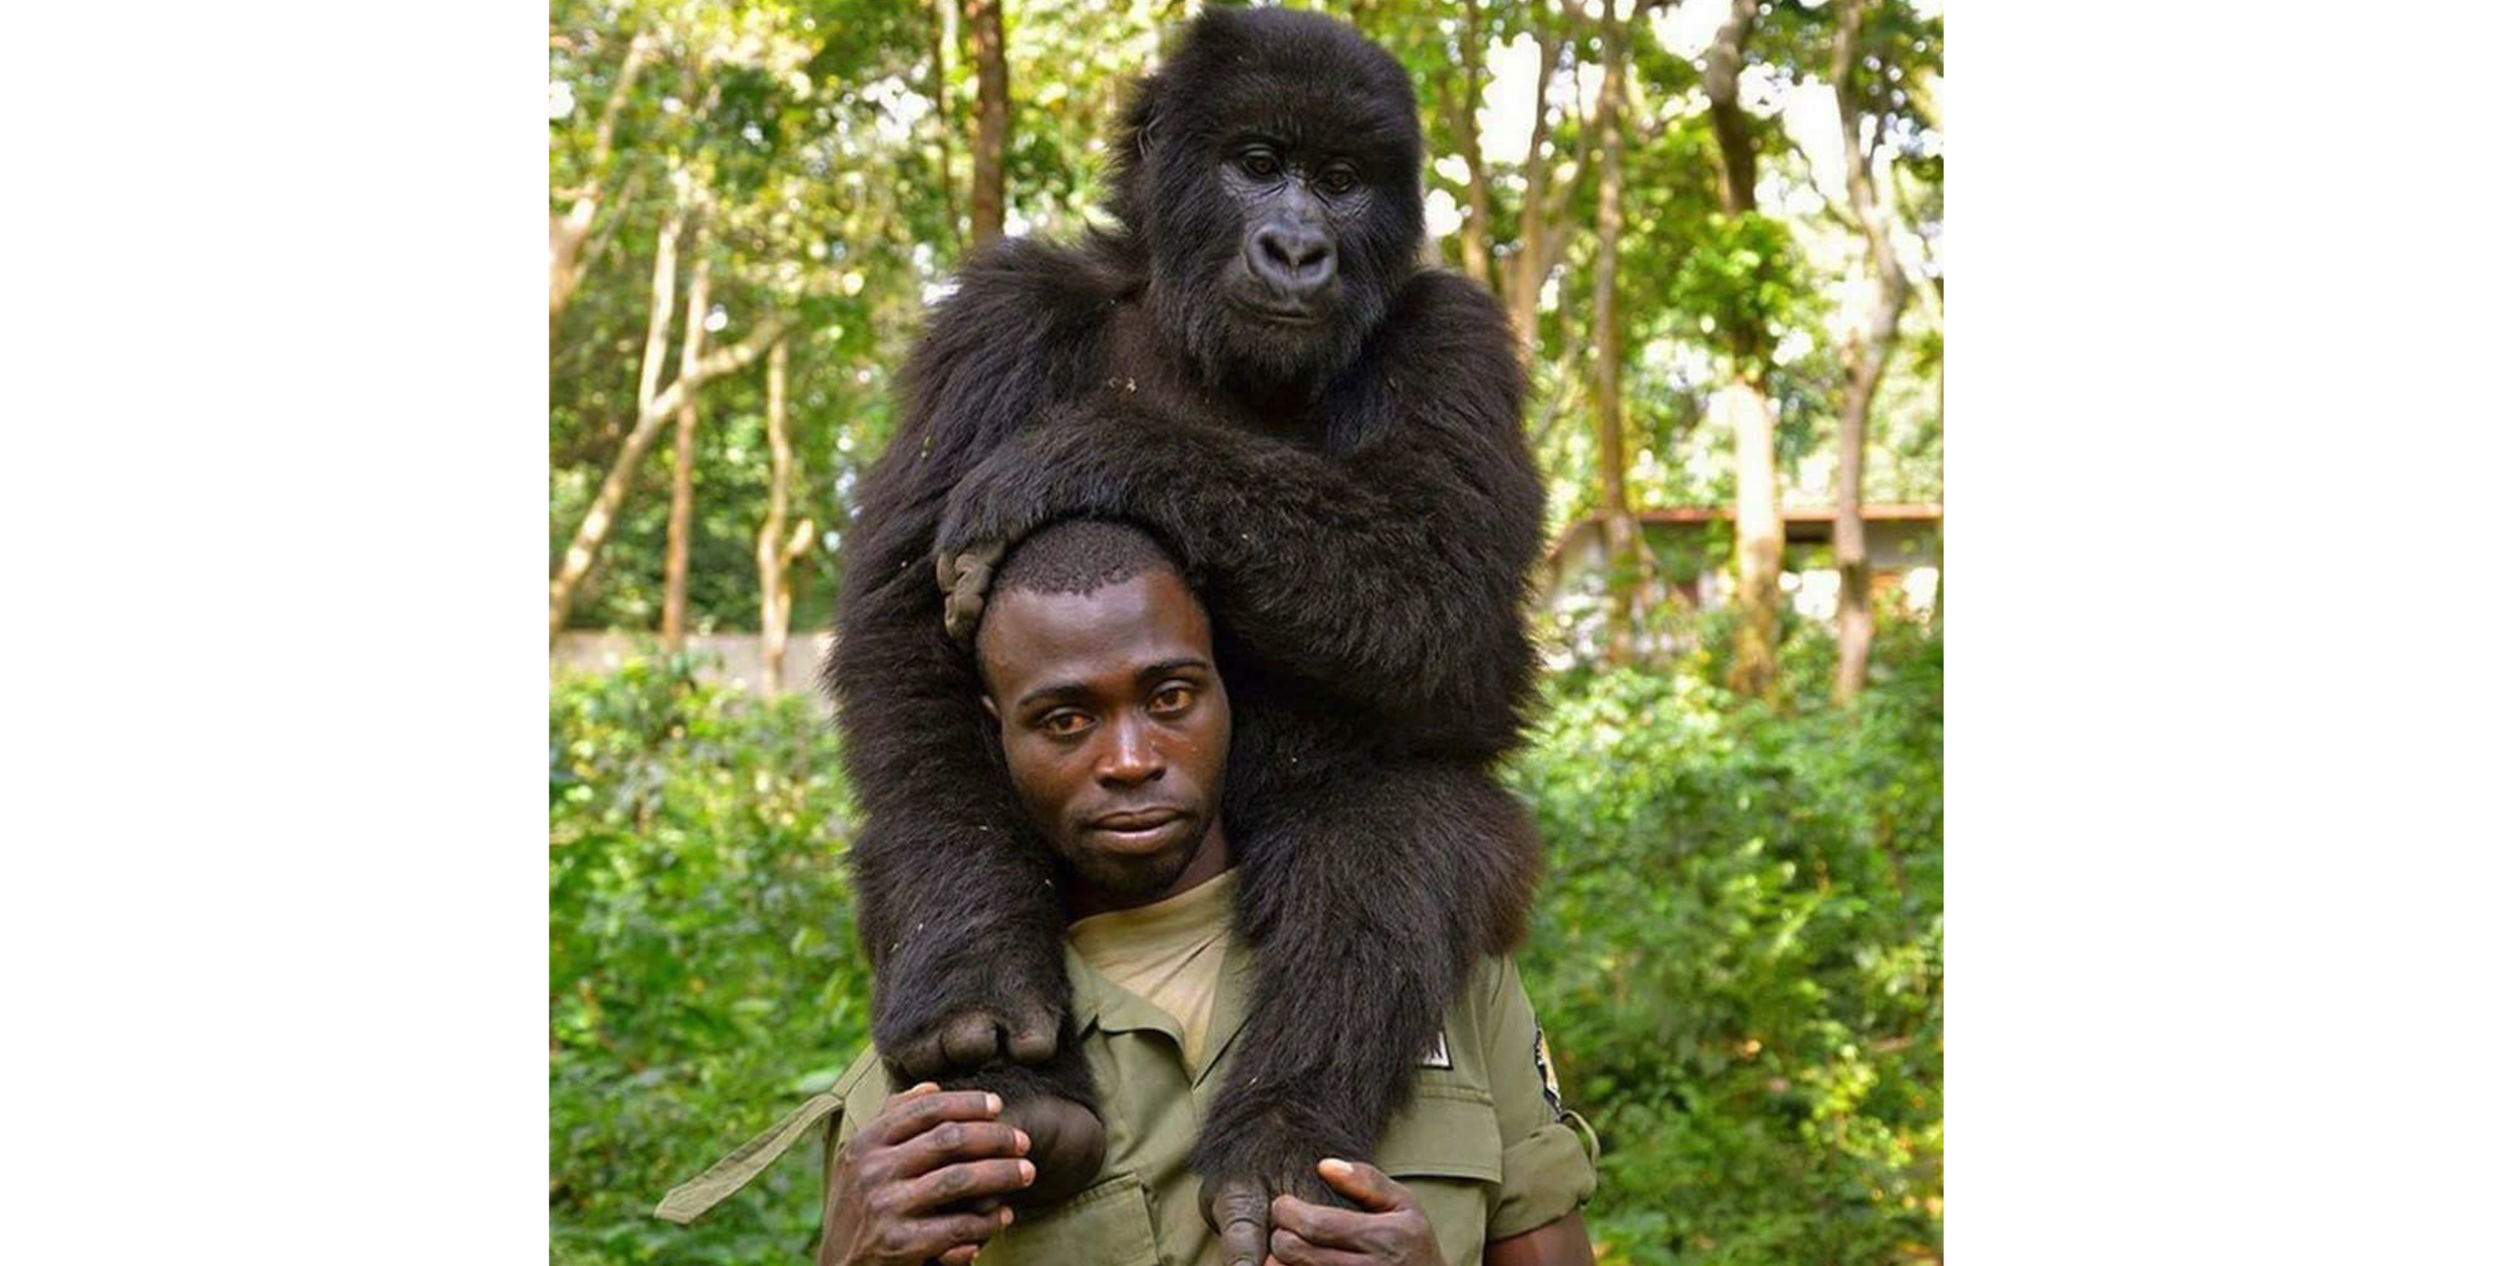 @Virunga National Park